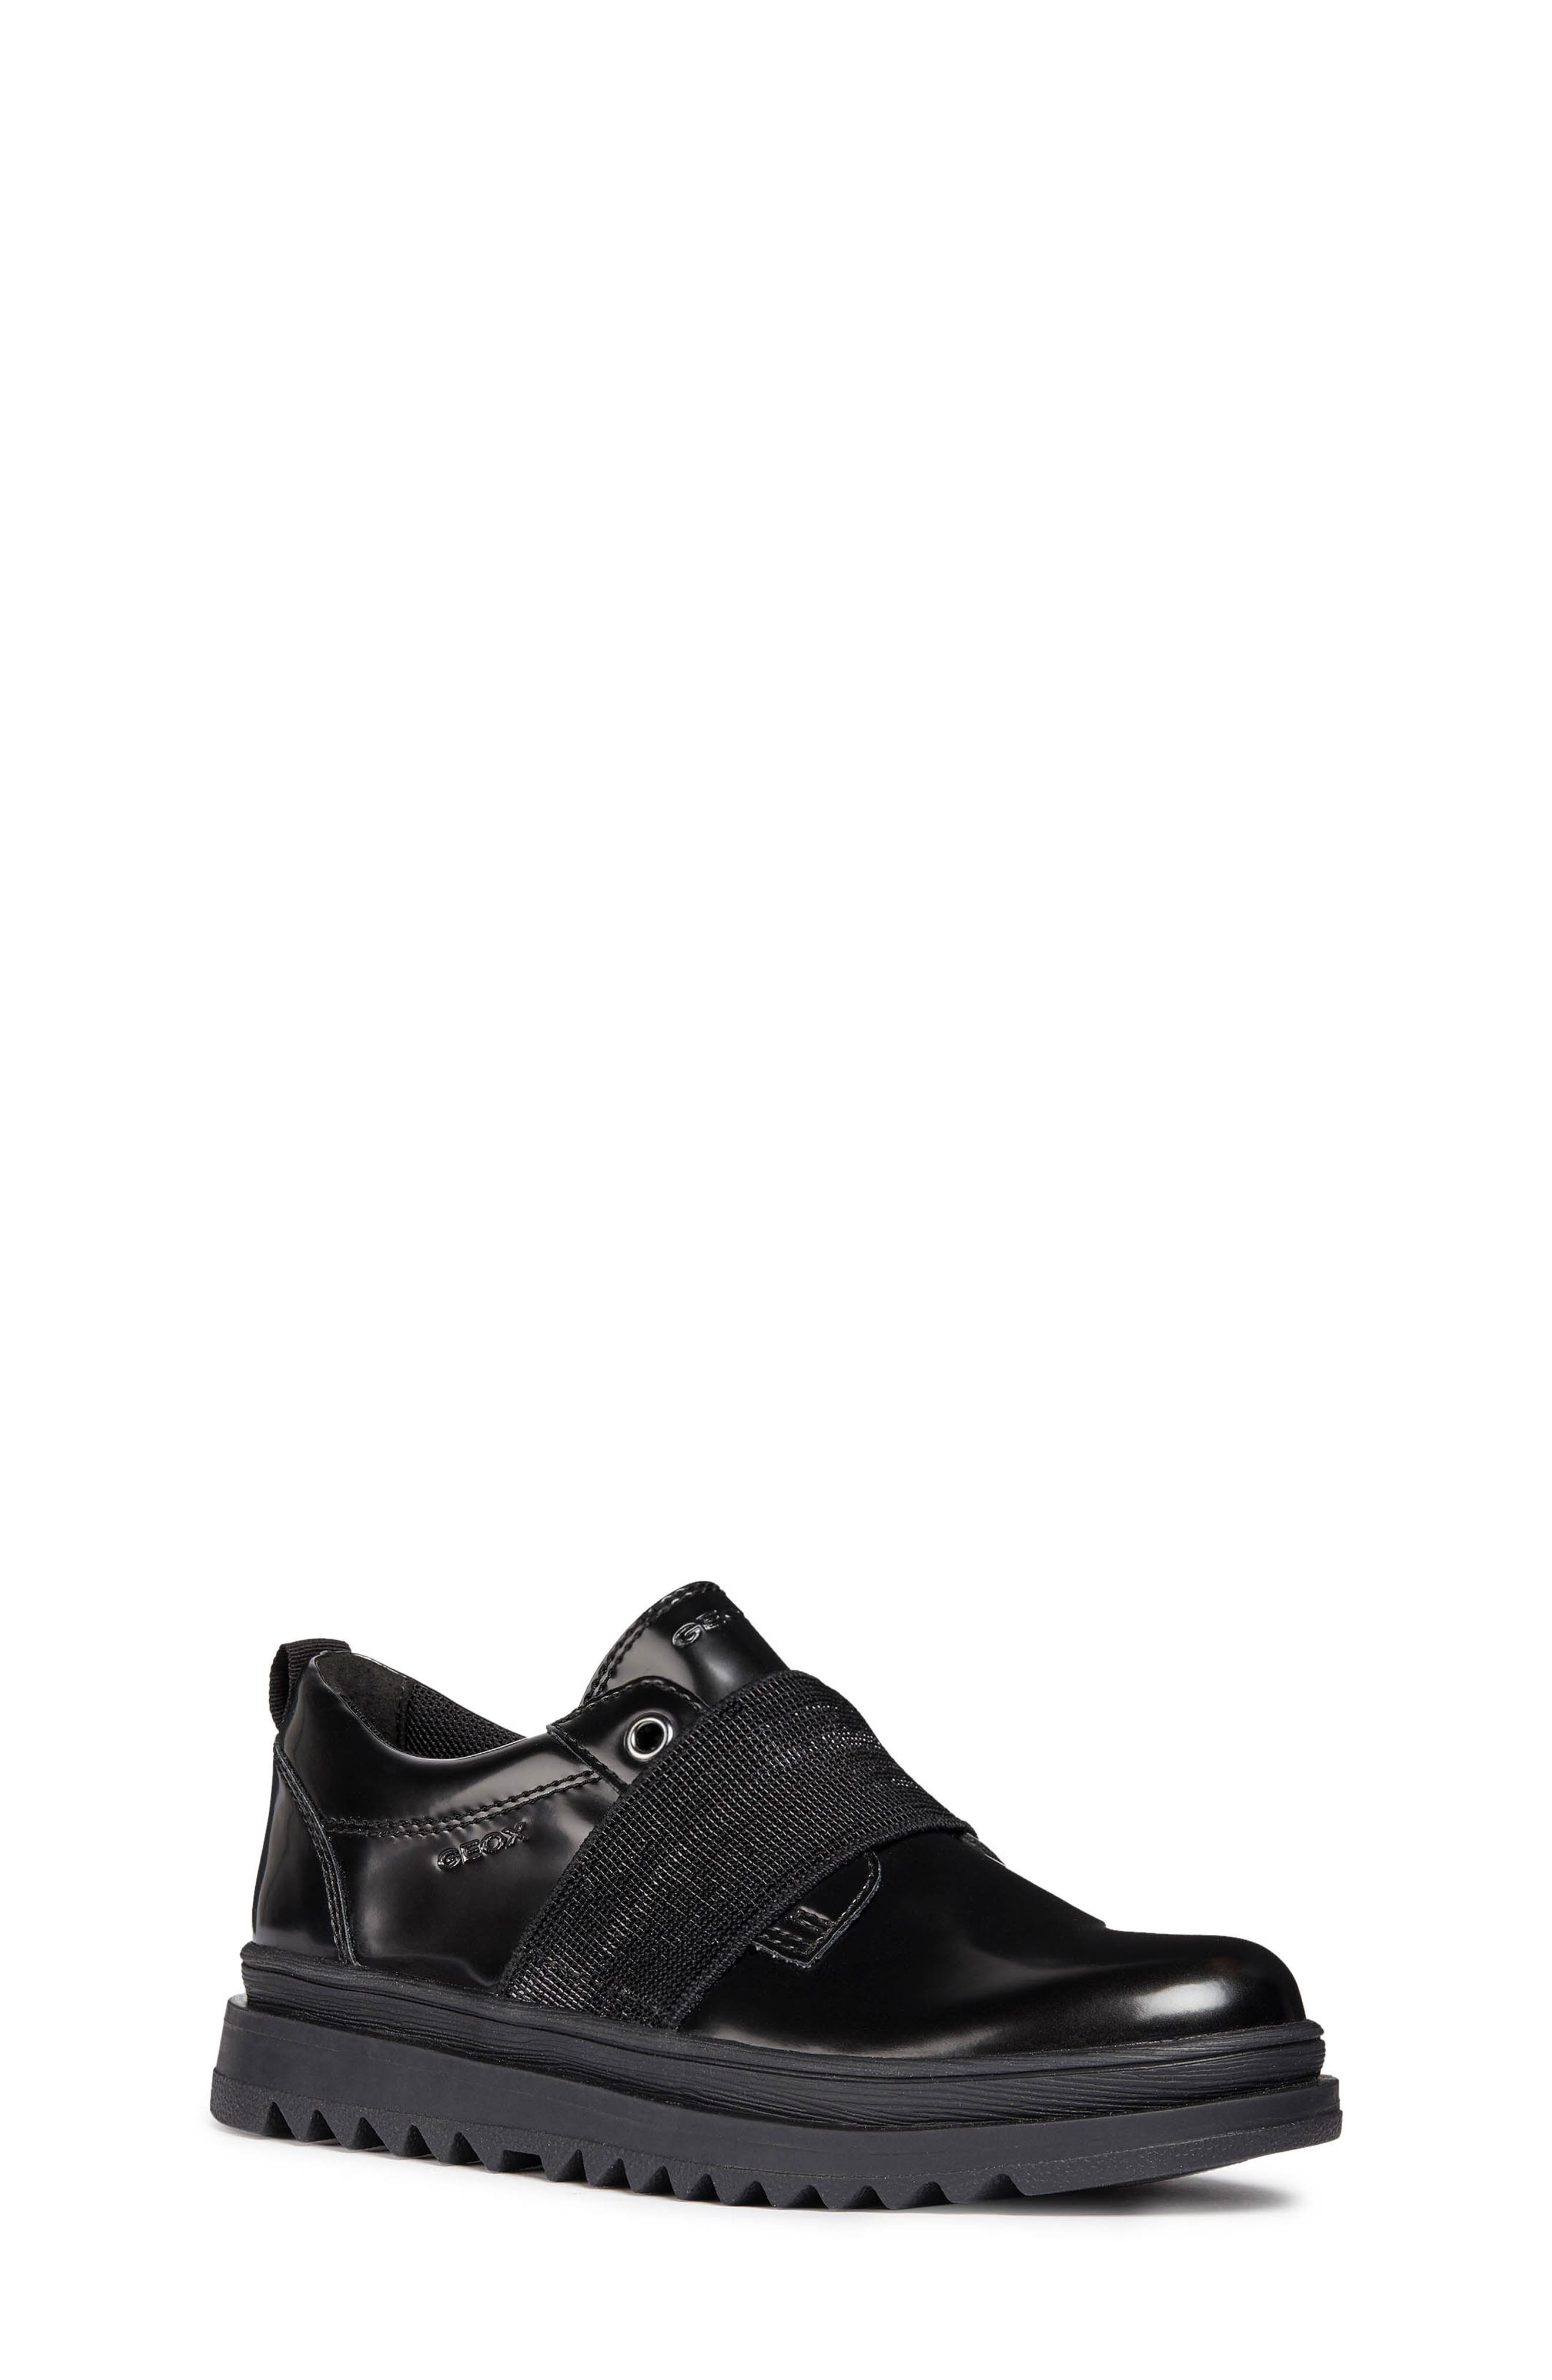 Gilly Jaw Sneaker,                         Main,                         color, BLACK